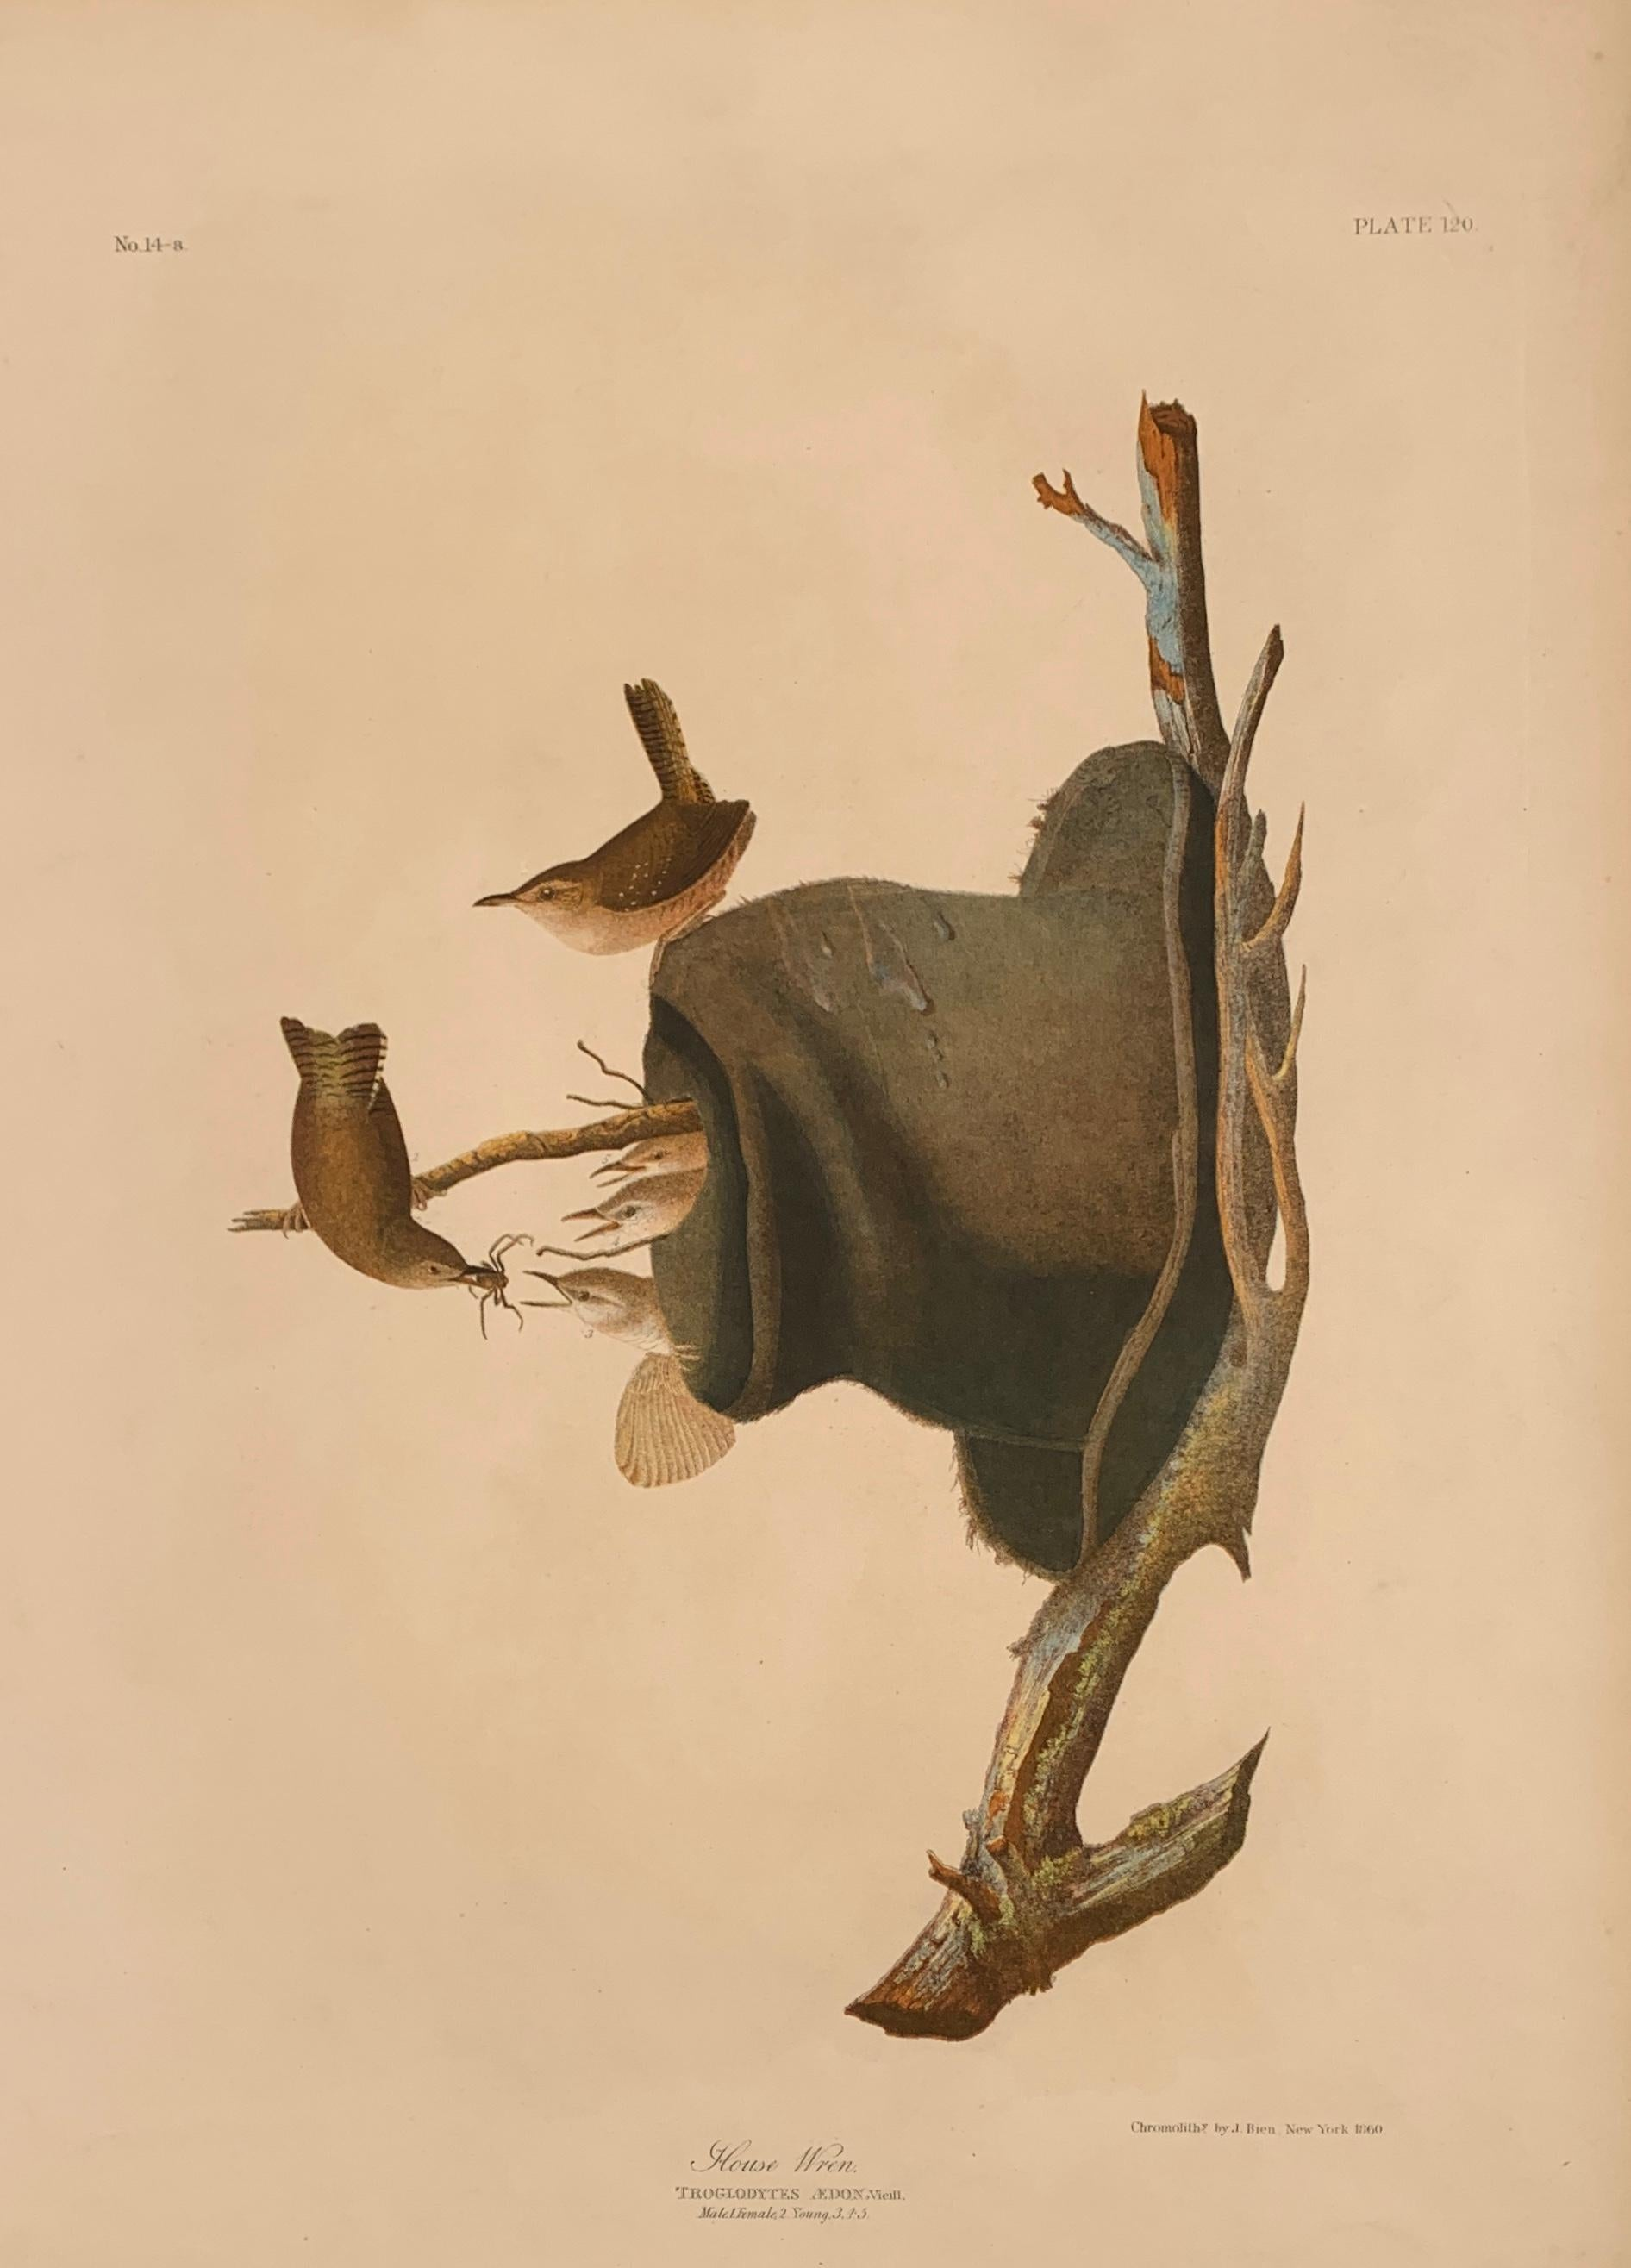 House Wren and its Hat House, from the Bien edition of Birds of America